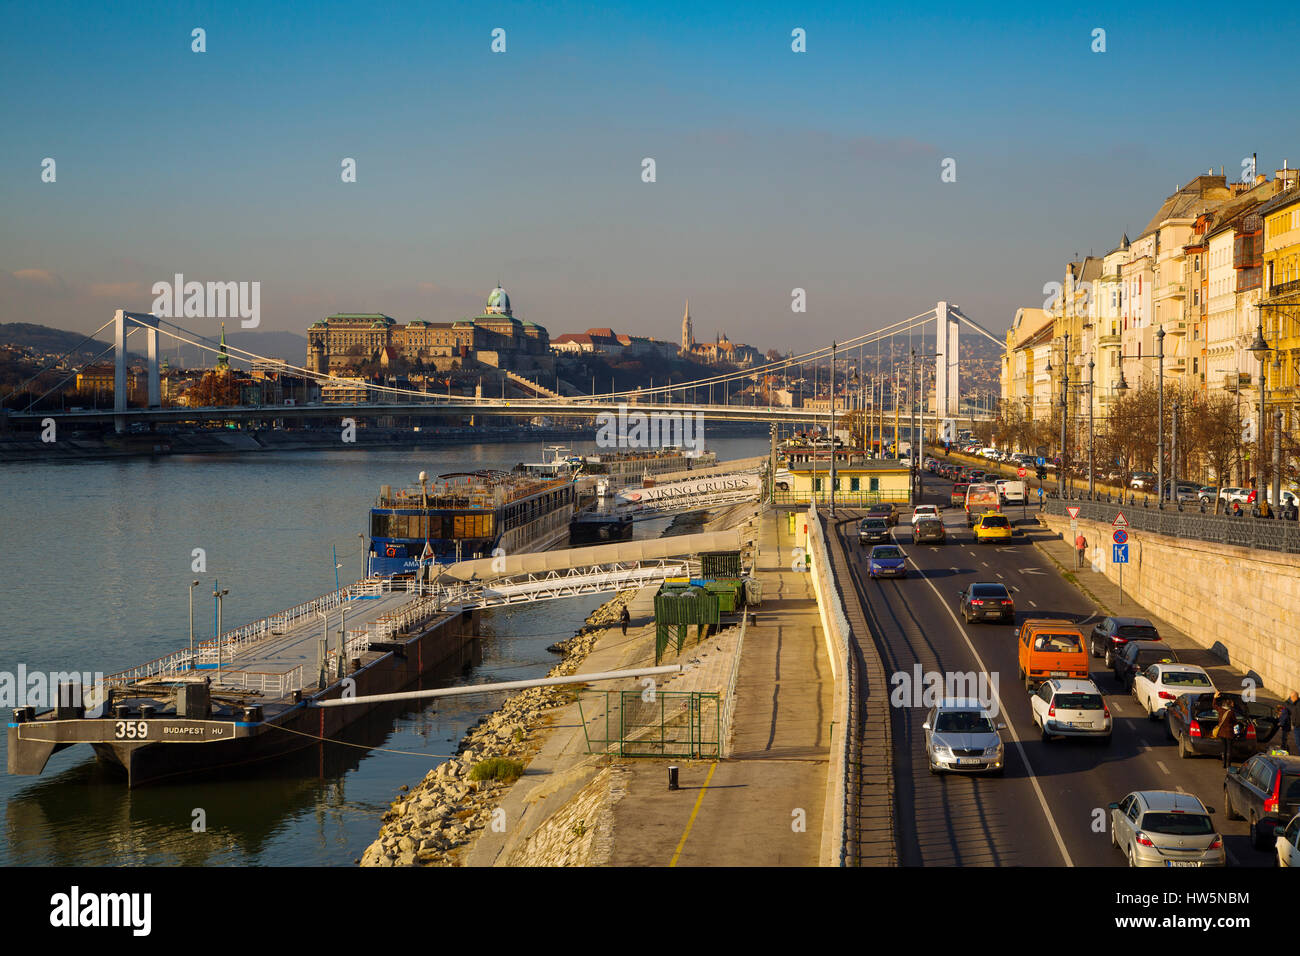 Riverbank. Danube River. Budapest Hungary, Southeast Europe - Stock Image